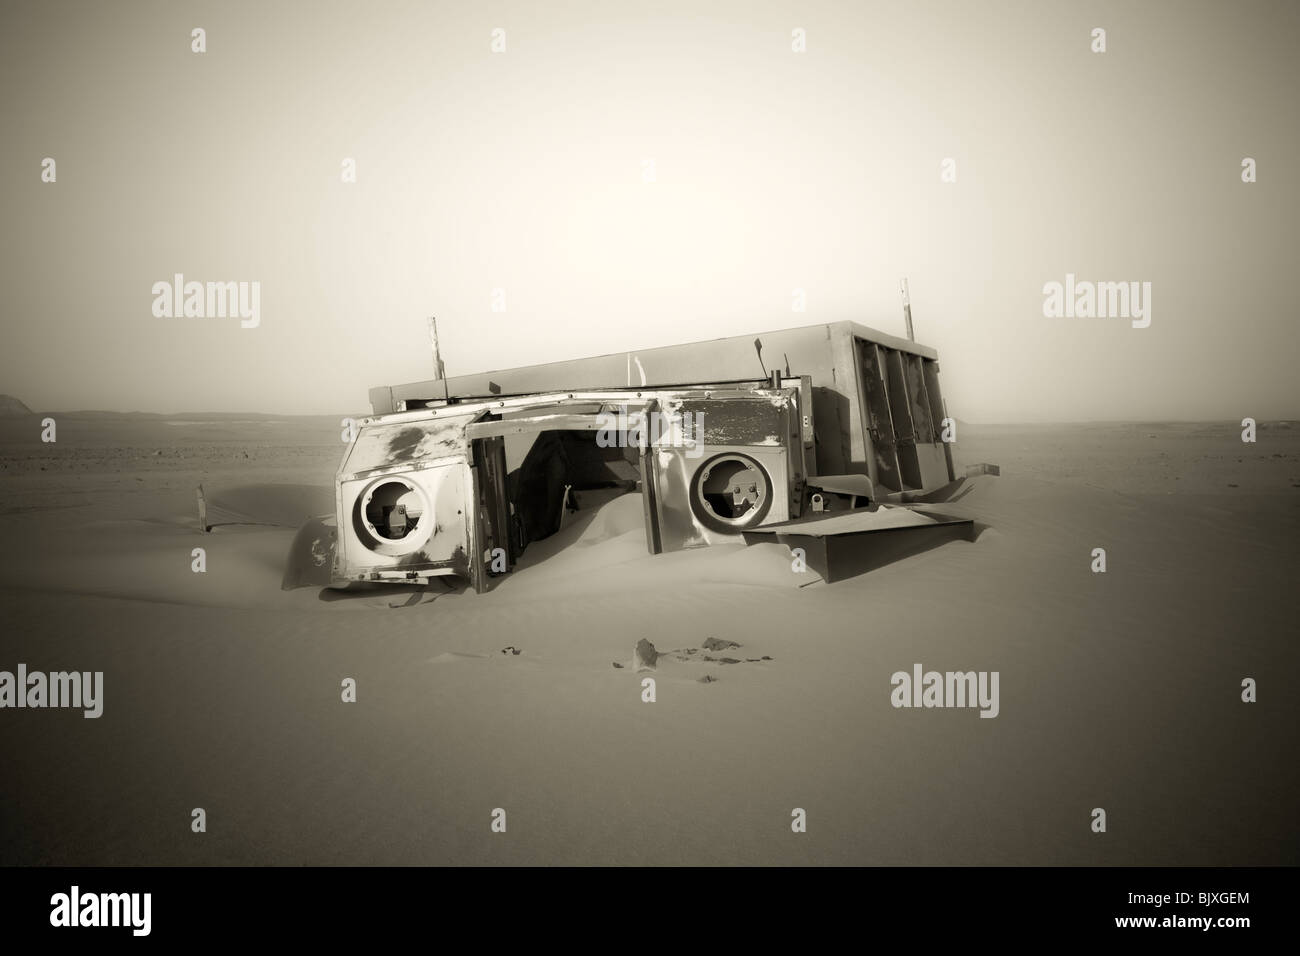 Monochrome image of abandoned Ford 30 CWT CMP truck from 1941/42 era sinking in the sand of the Western Desert, - Stock Image